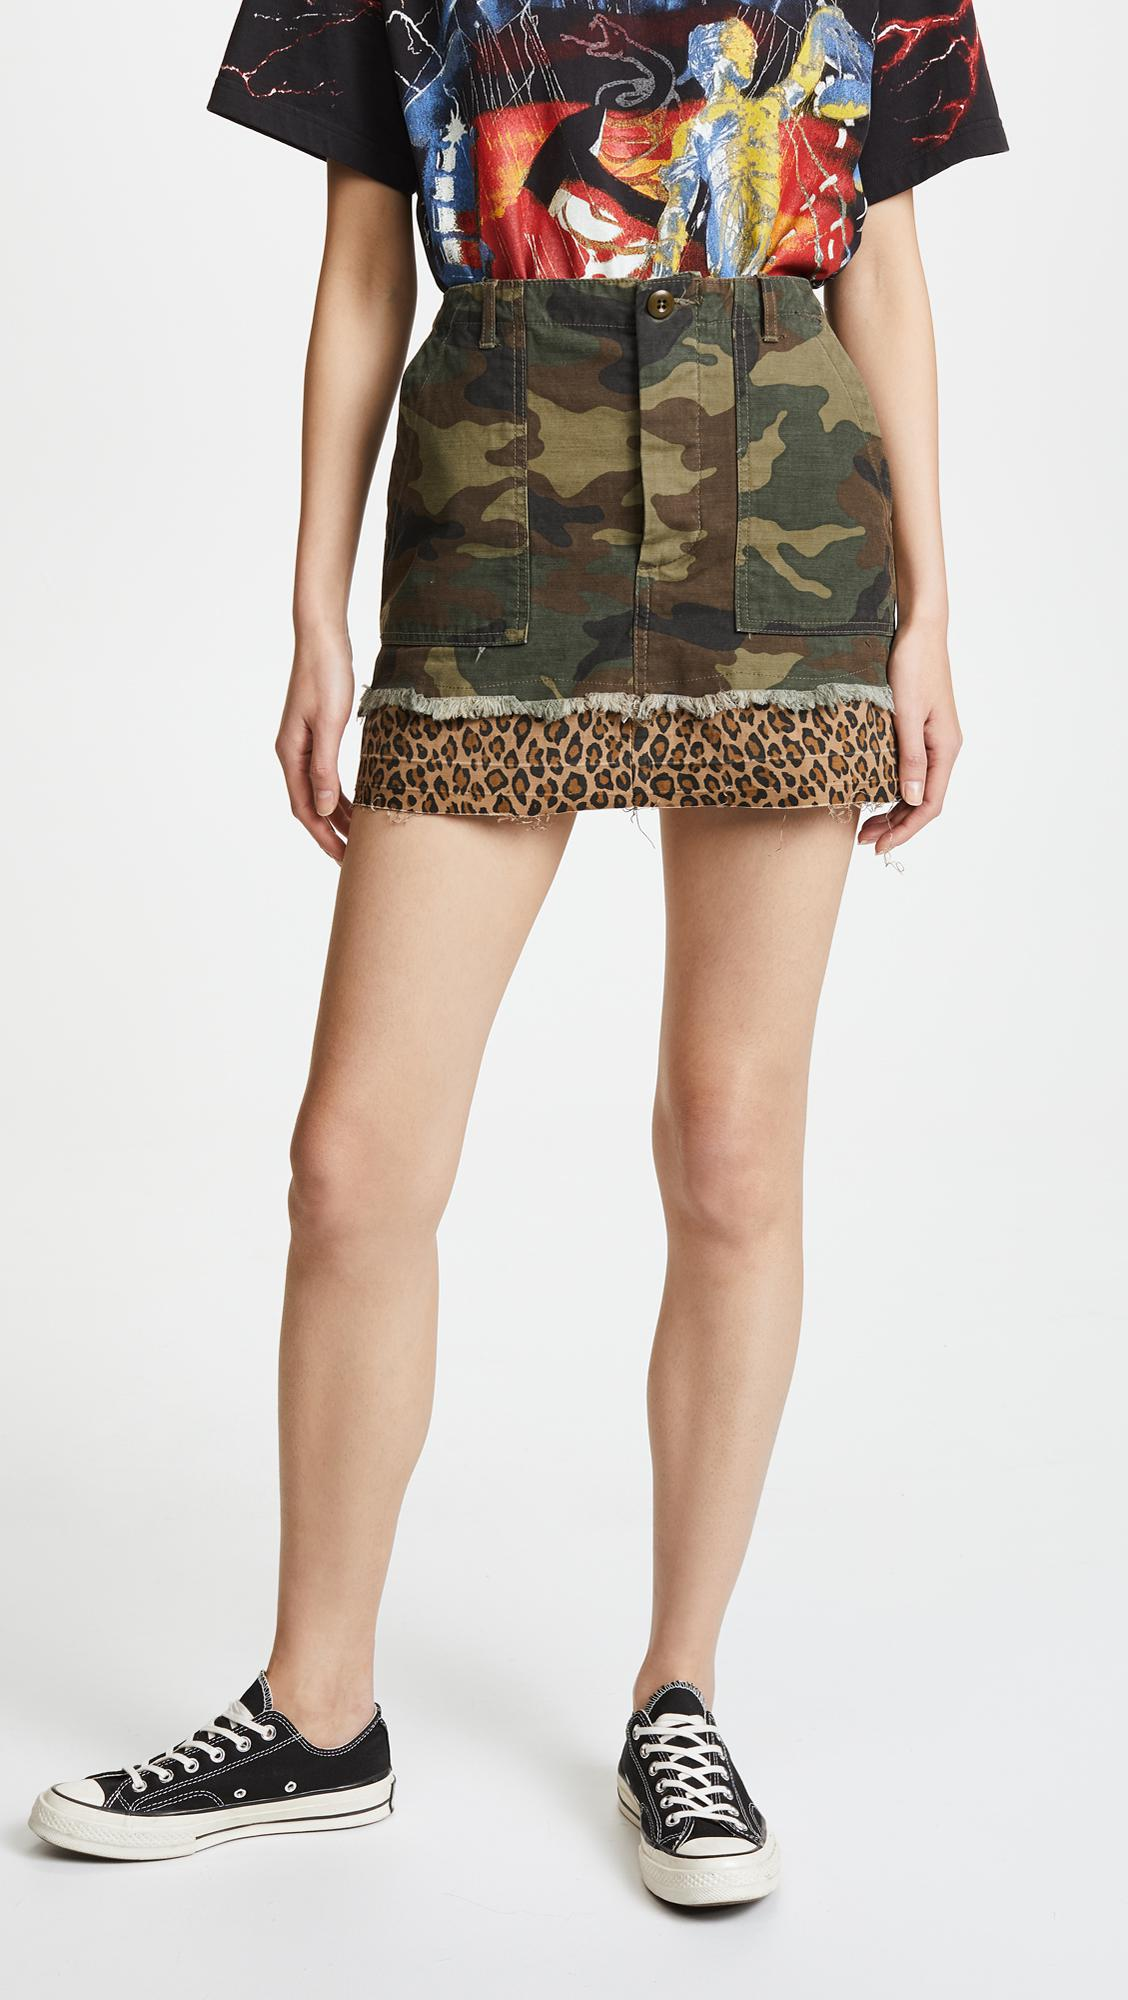 R13 utility camp skirt New Arrival Free Shipping With Credit Card bjyxM